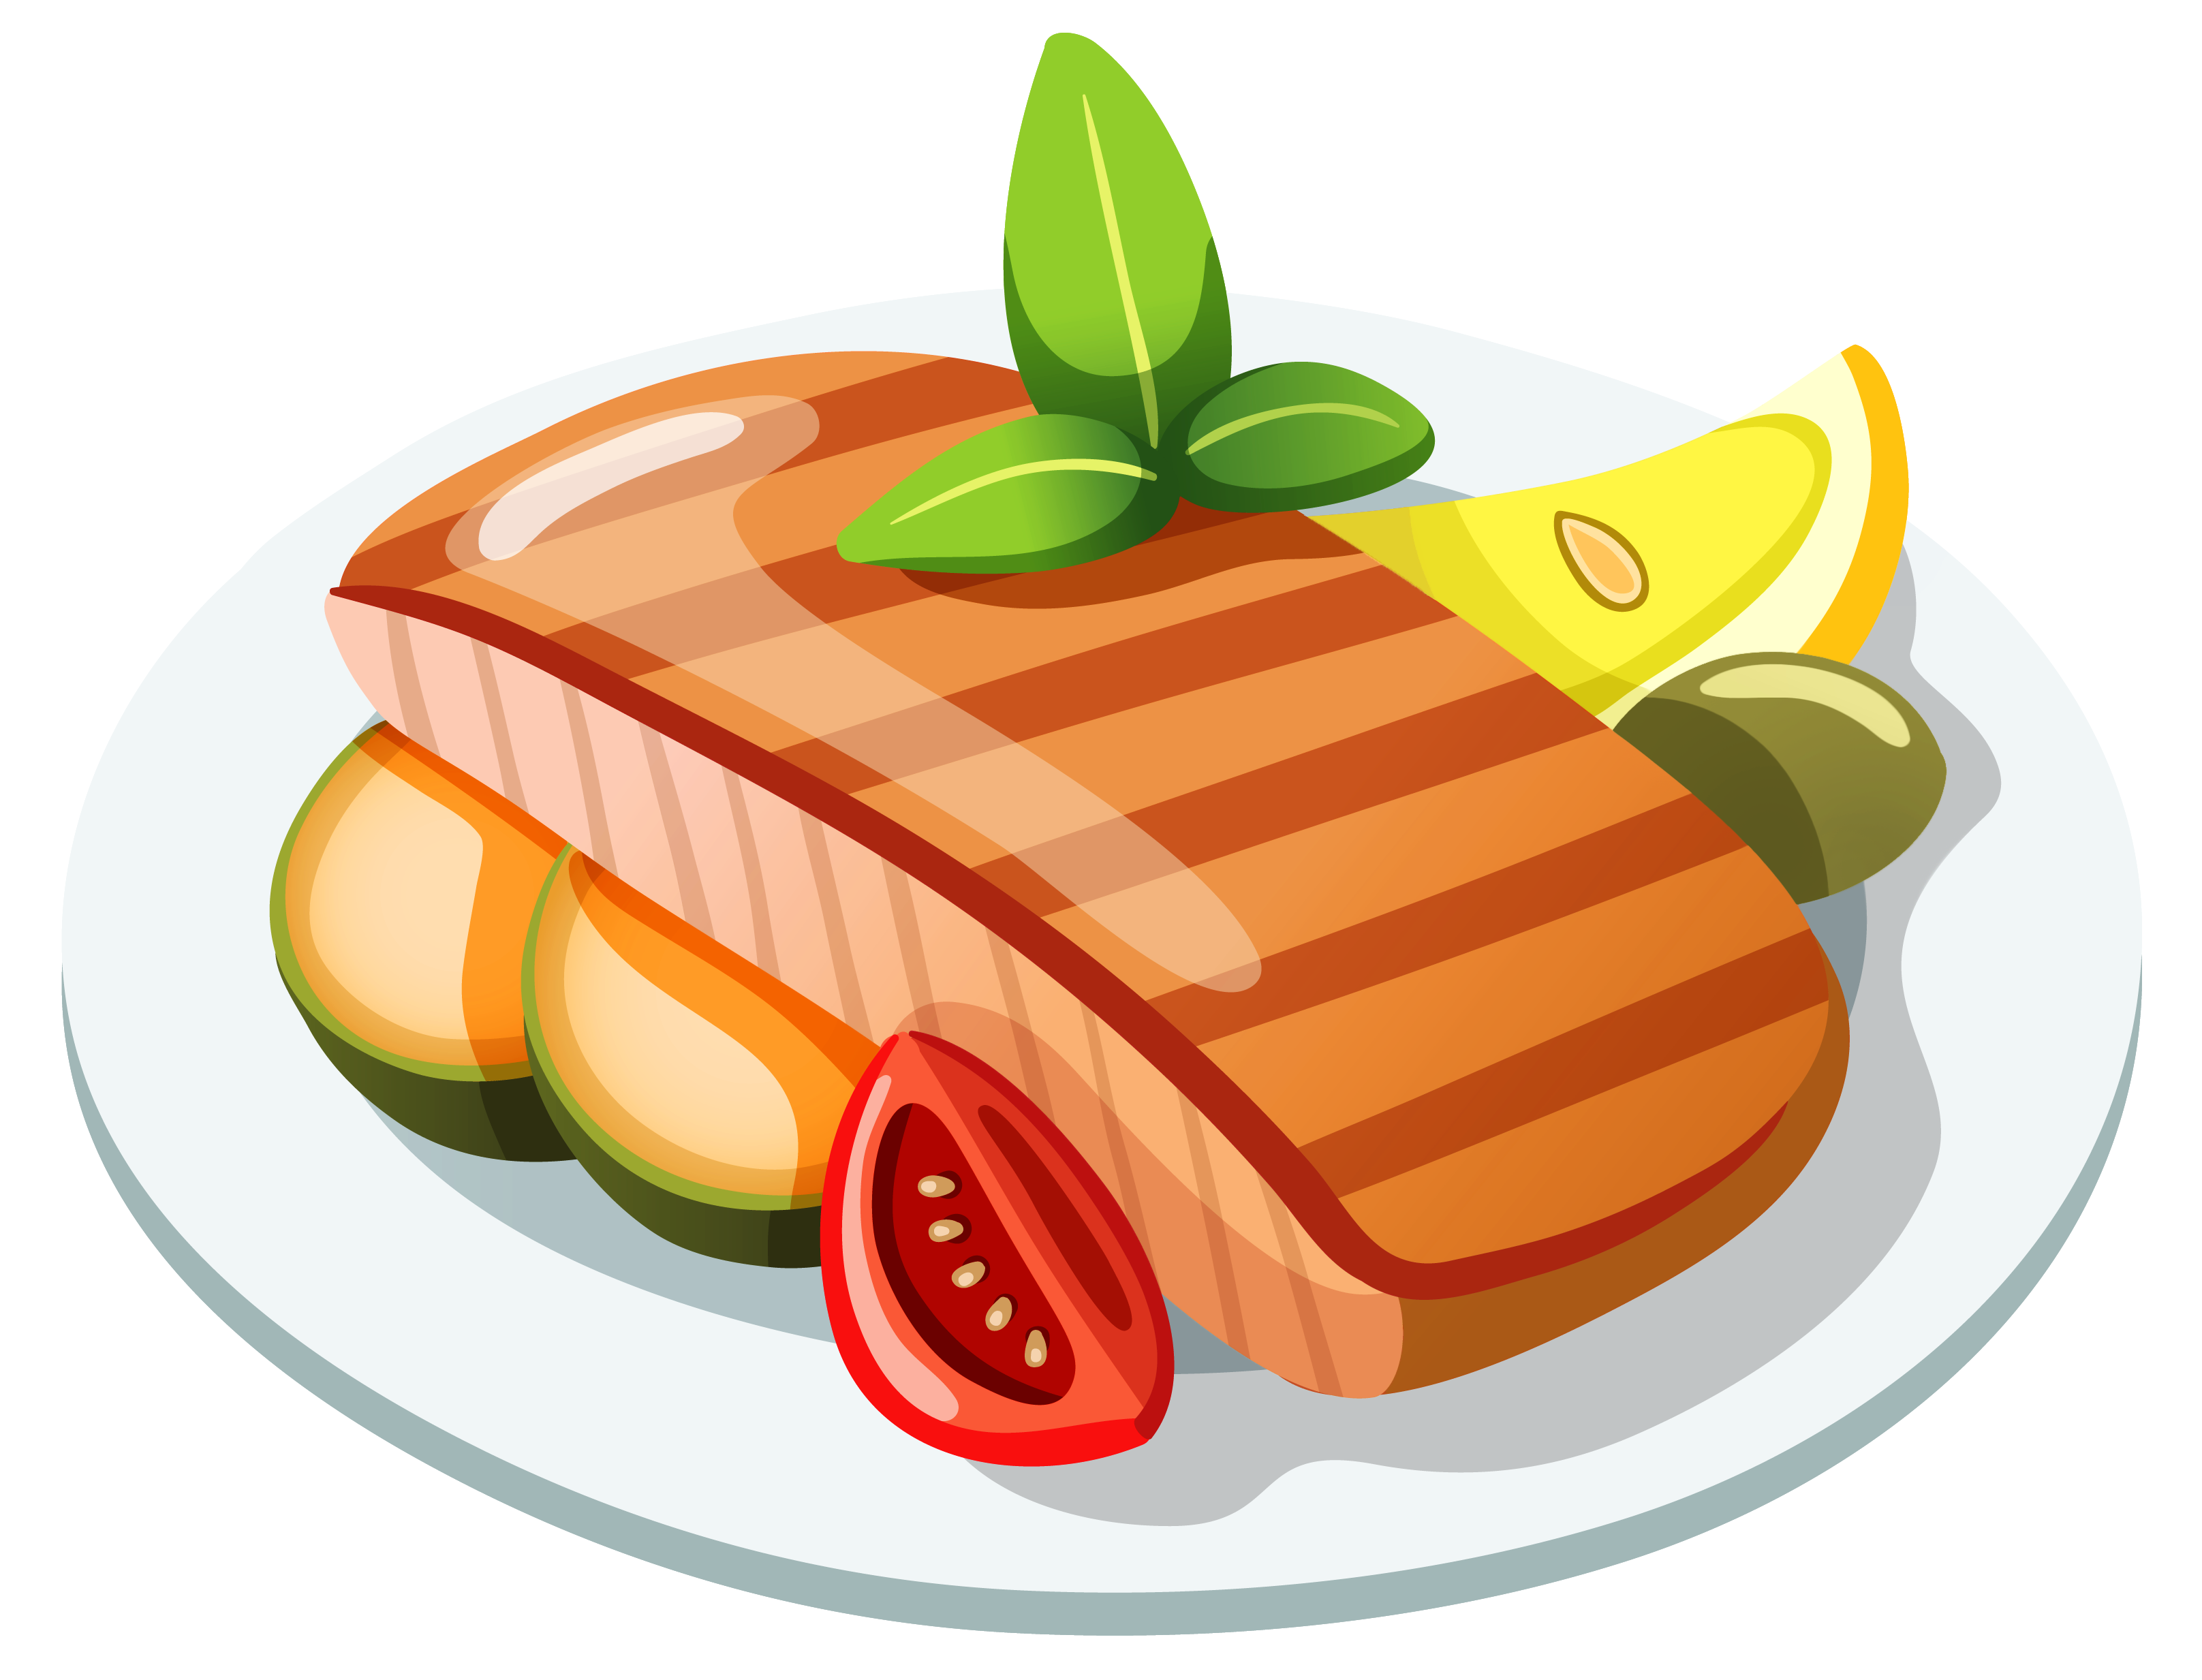 png free download  collection of transparent. Beef clipart meat dish.